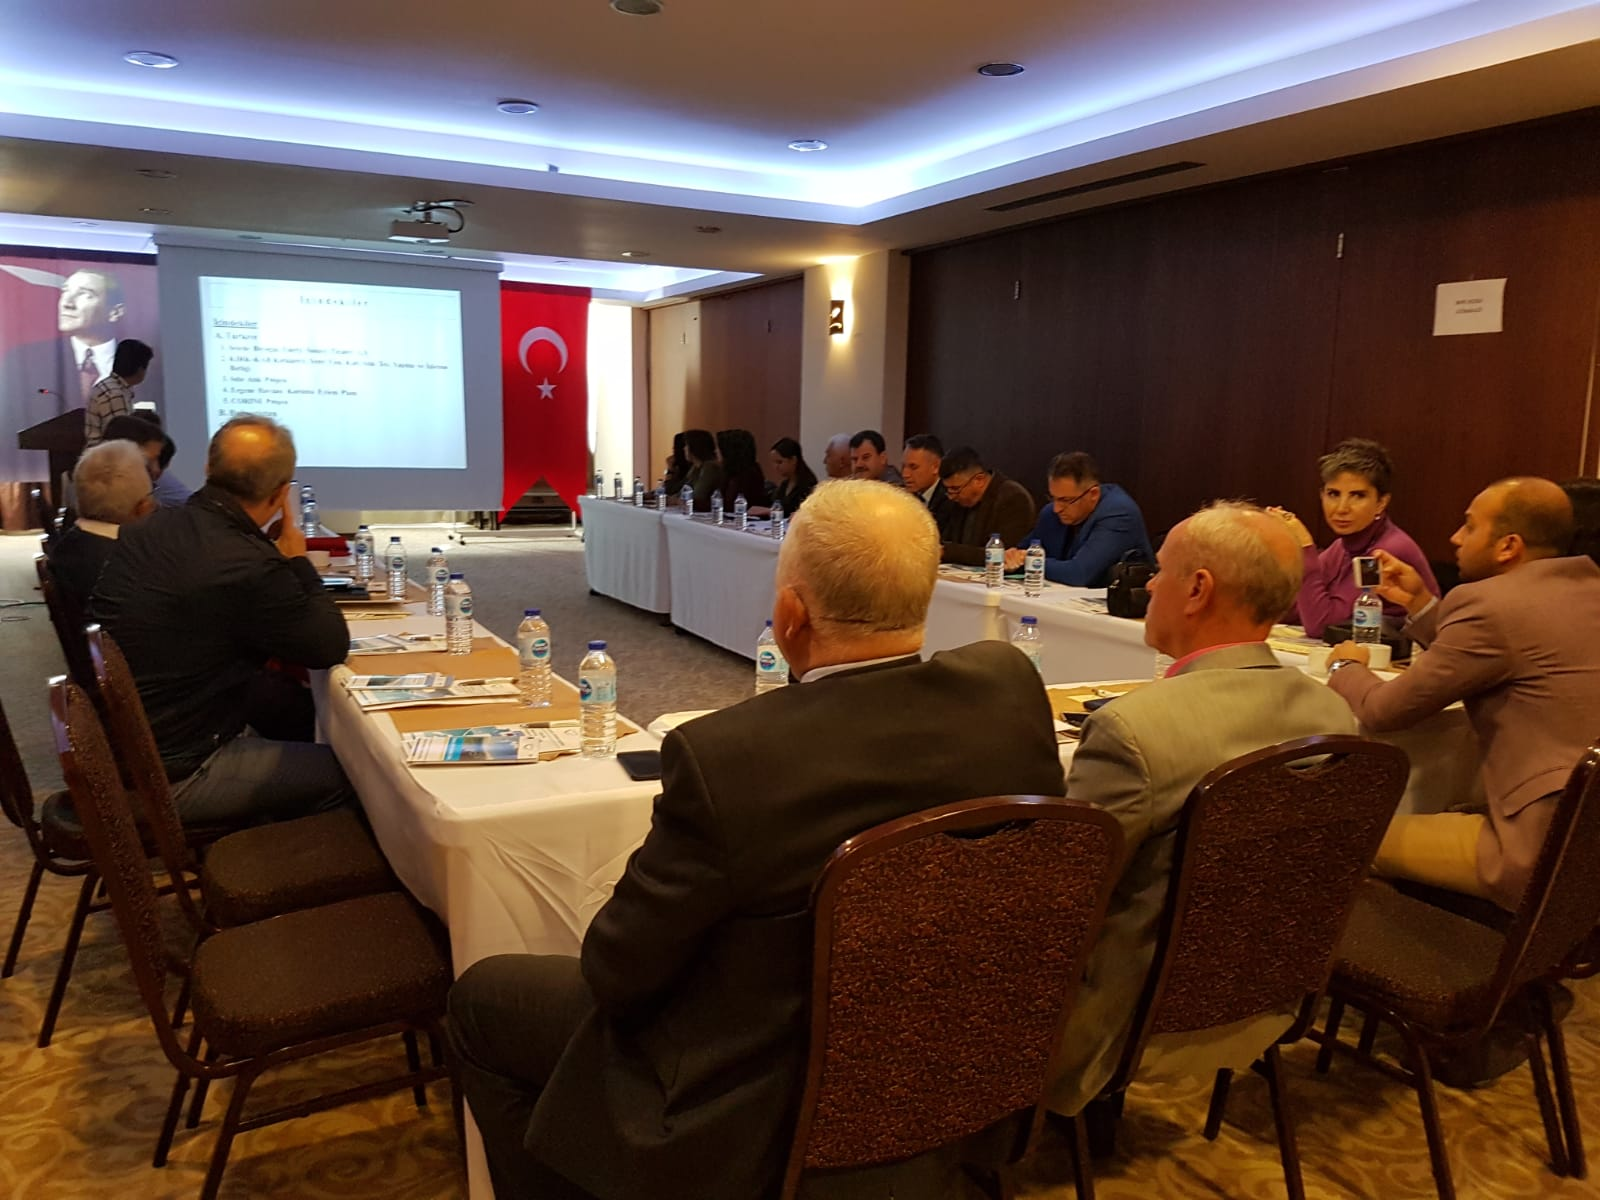 A Thematic Conference with the Local Stakeholders in Demirköy was orginized